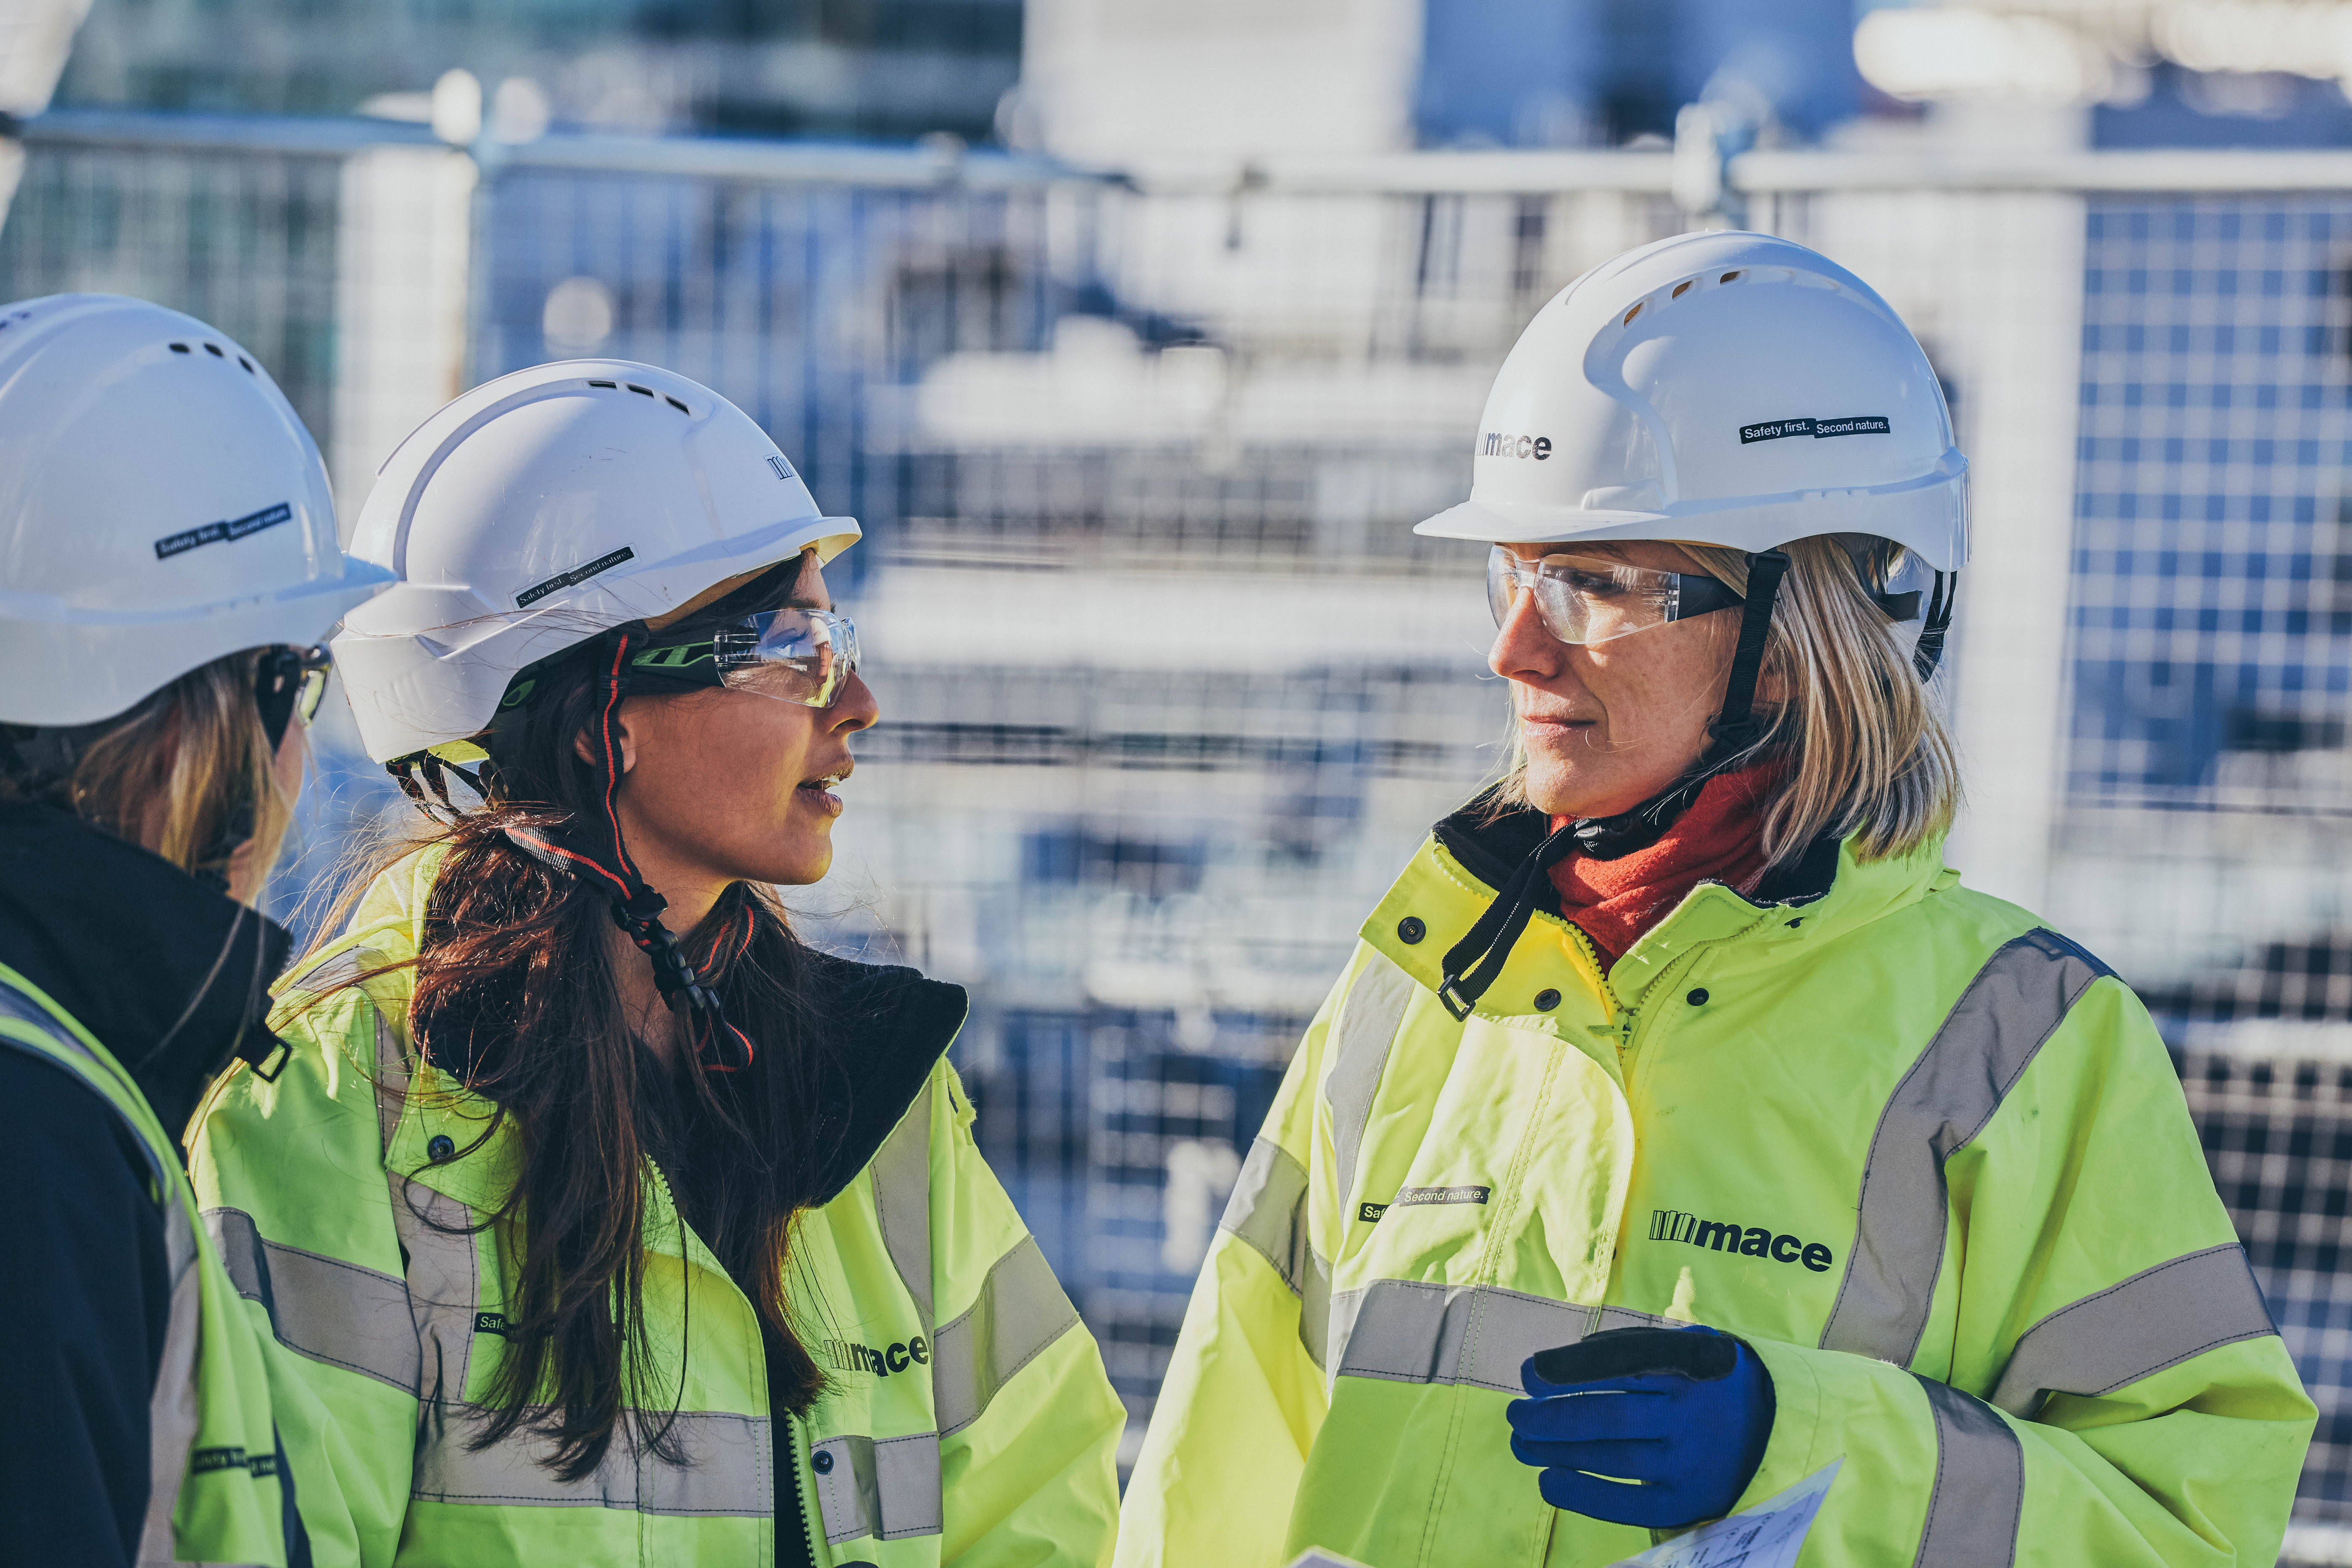 Two women in hivis jackets on a construction site in the daytime